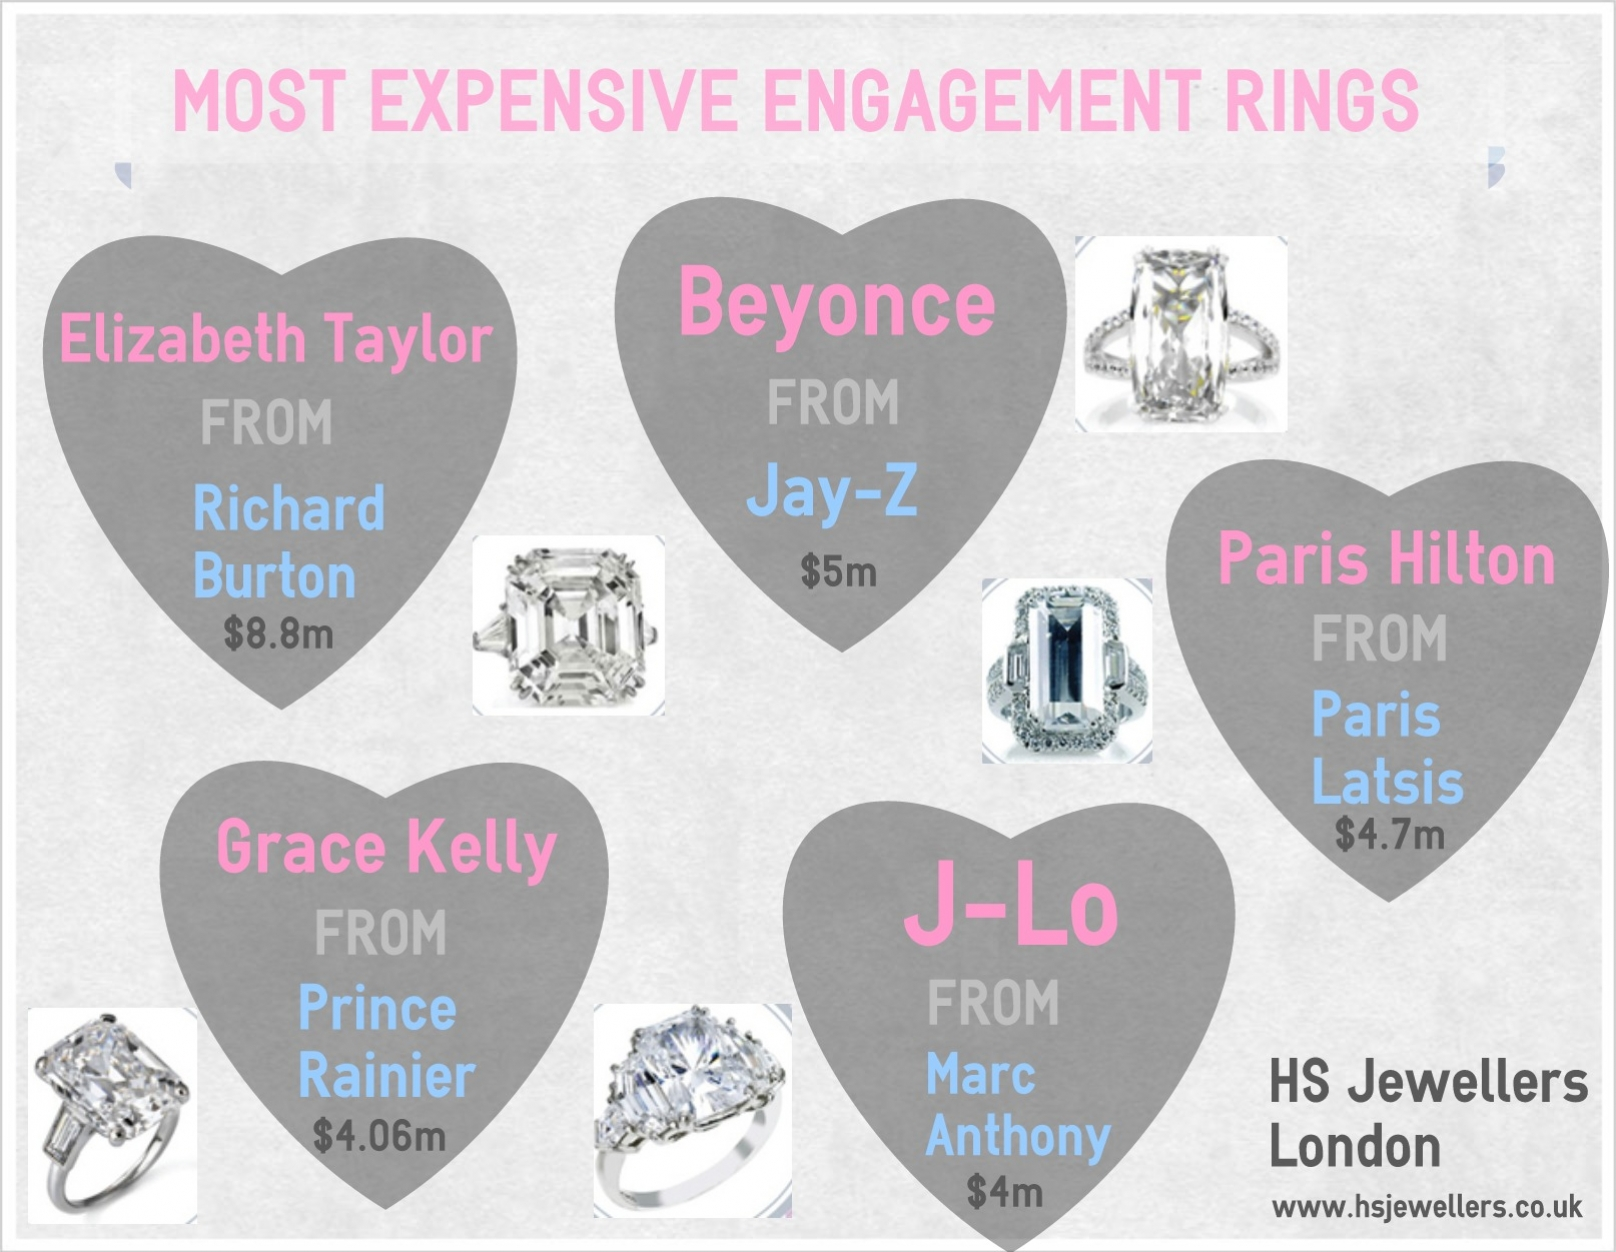 Most Expensive Engagement Rings Visually